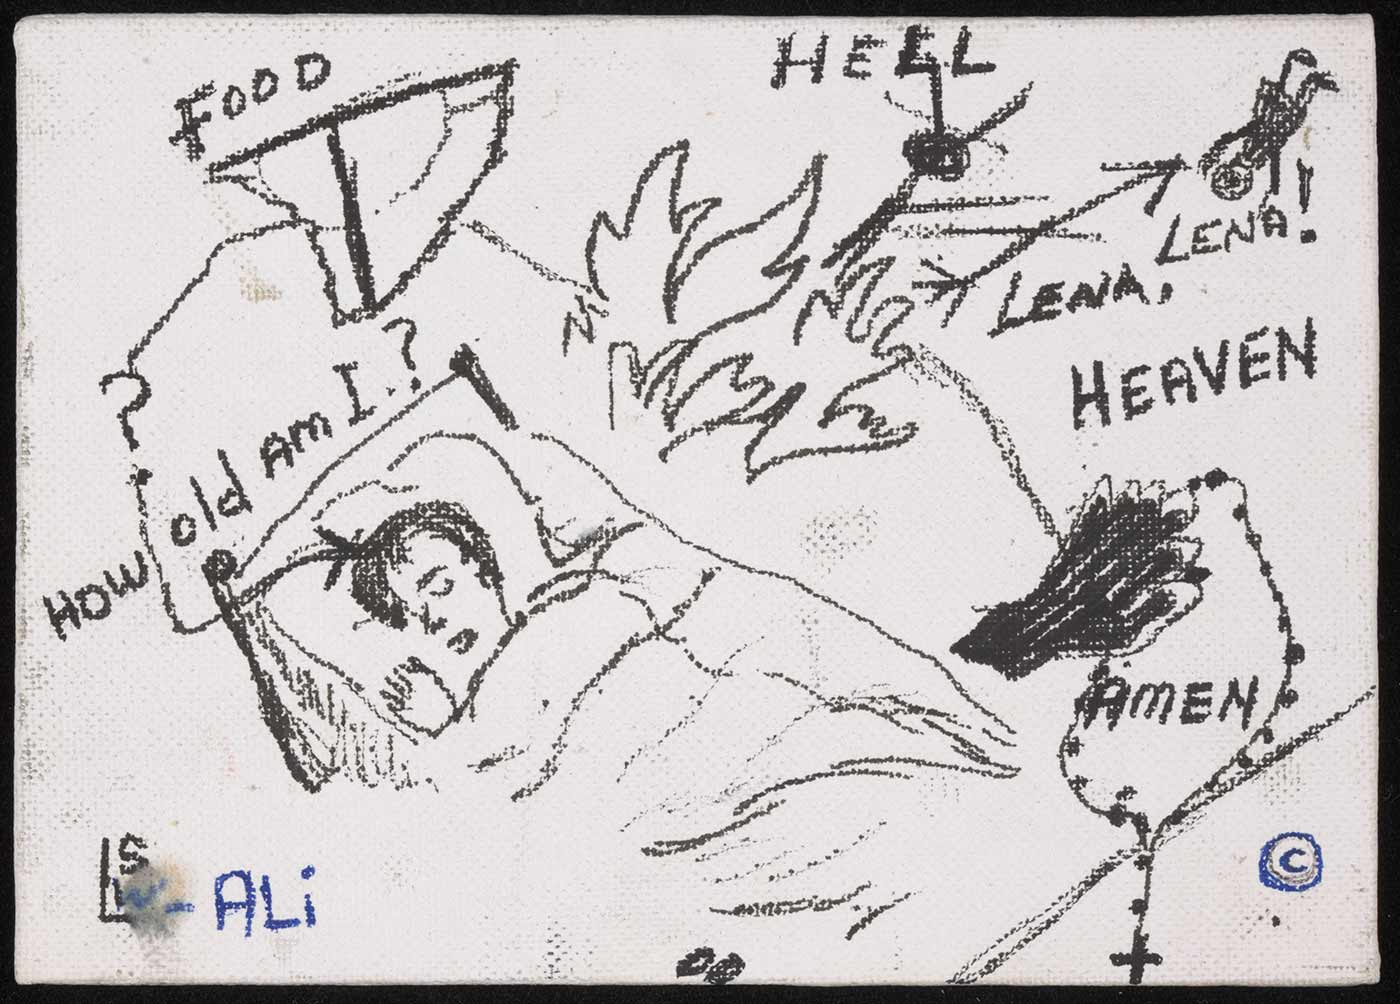 A white canvas art board with a black ink sketch of a child sleeping in a bed. Words and other images surround the central sleeping figure. 'FOOD / How old am I? / HELL / LENA, LENA / HEAVEN / AMEN' is written in black pen. Flames, a falling girl and a hand holding rosary beads are also sketched. 'LSW ALi' is the artist's mark in the bottom right. - click to view larger image